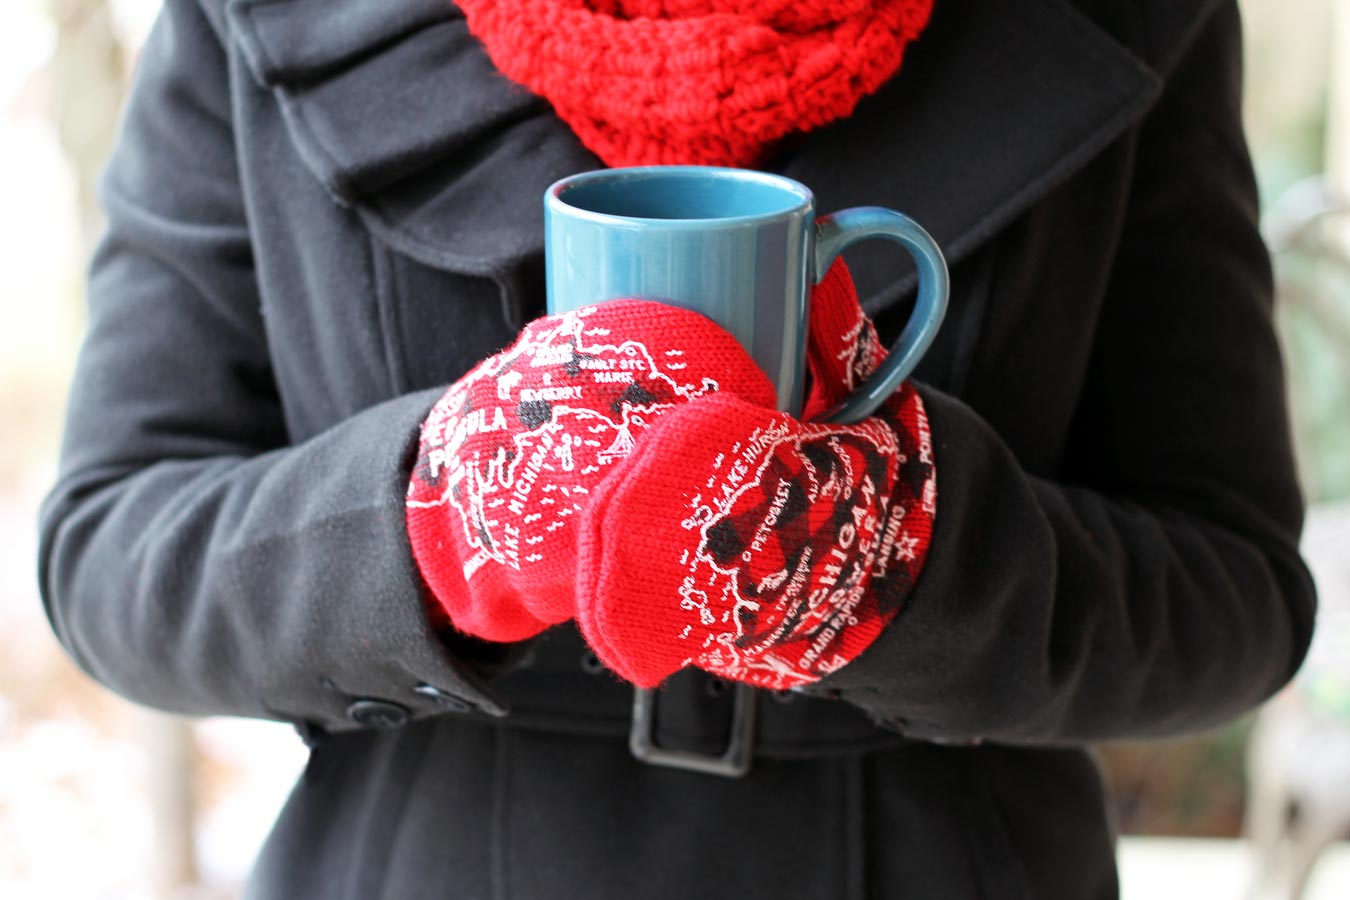 4 Fun Gift Ideas From Michigan Mittens // Check out the latest from Michigan Mittens - L'Oven Mitts, Hunter's Plaid Mittens, Old Maid in Michigan, and more! (via Wading in Big Shoes)